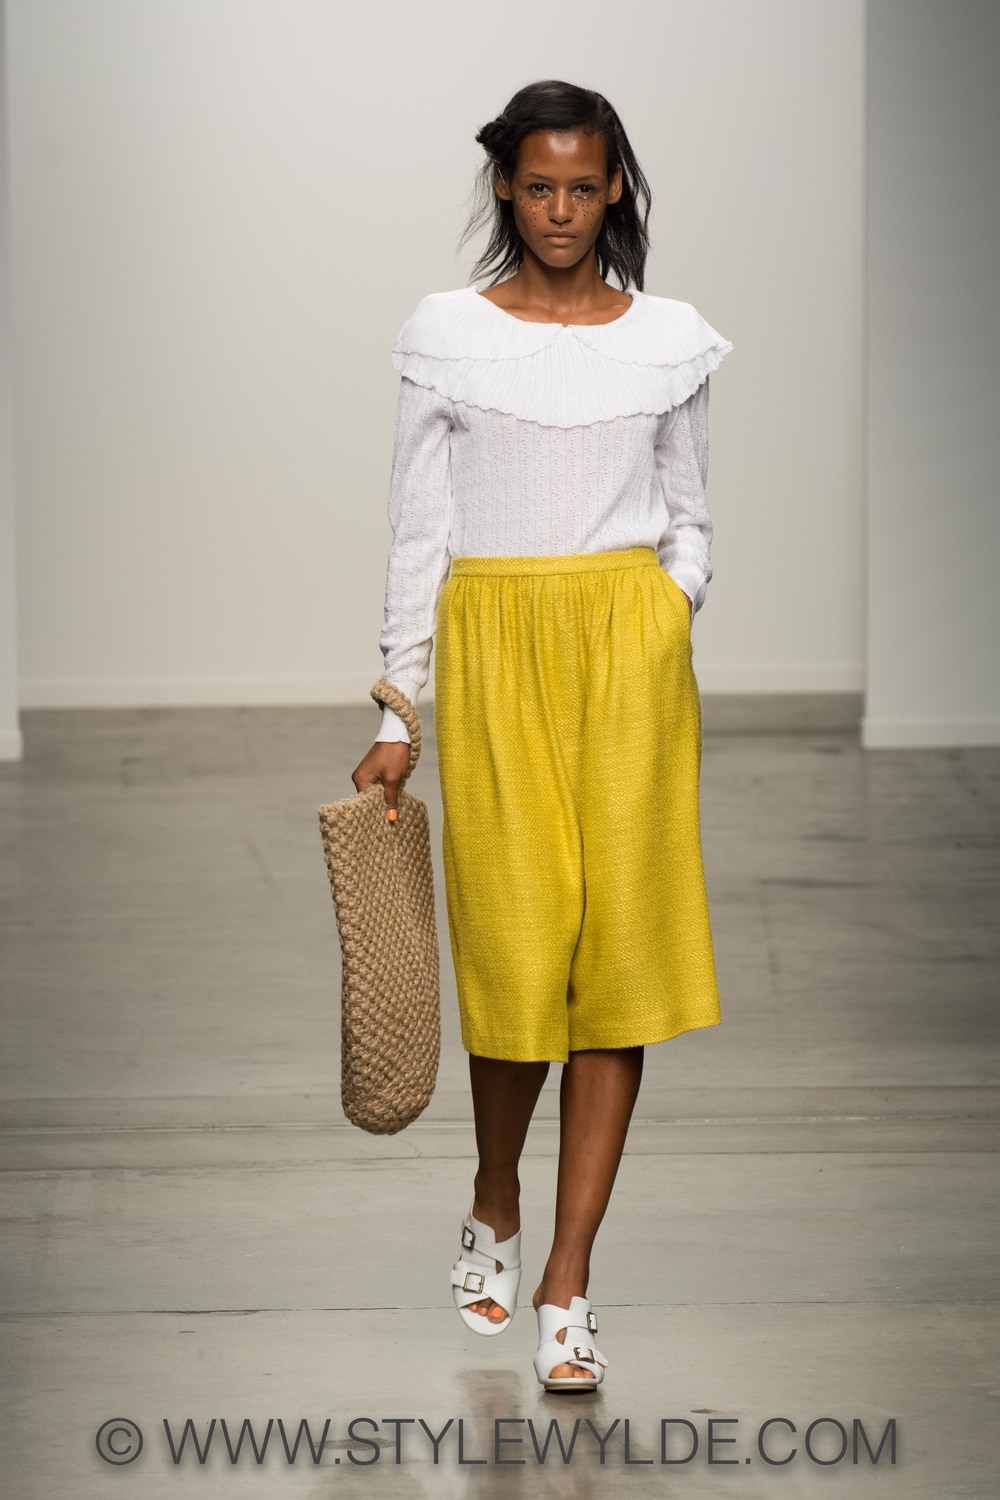 StyleWylde_adetacher_FOH_SS15_sw (7 of 37).jpg